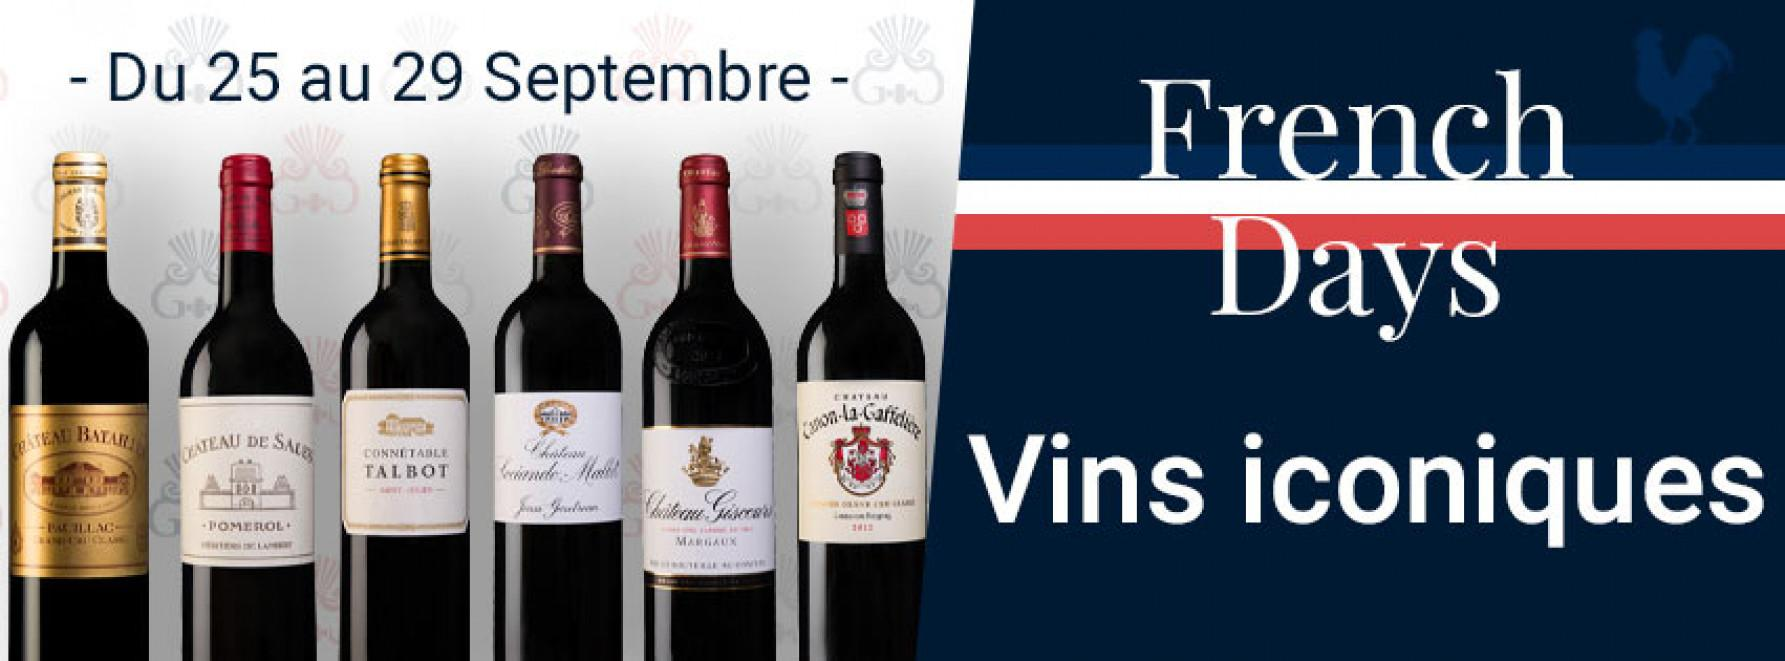 French Days | Vins iconiques